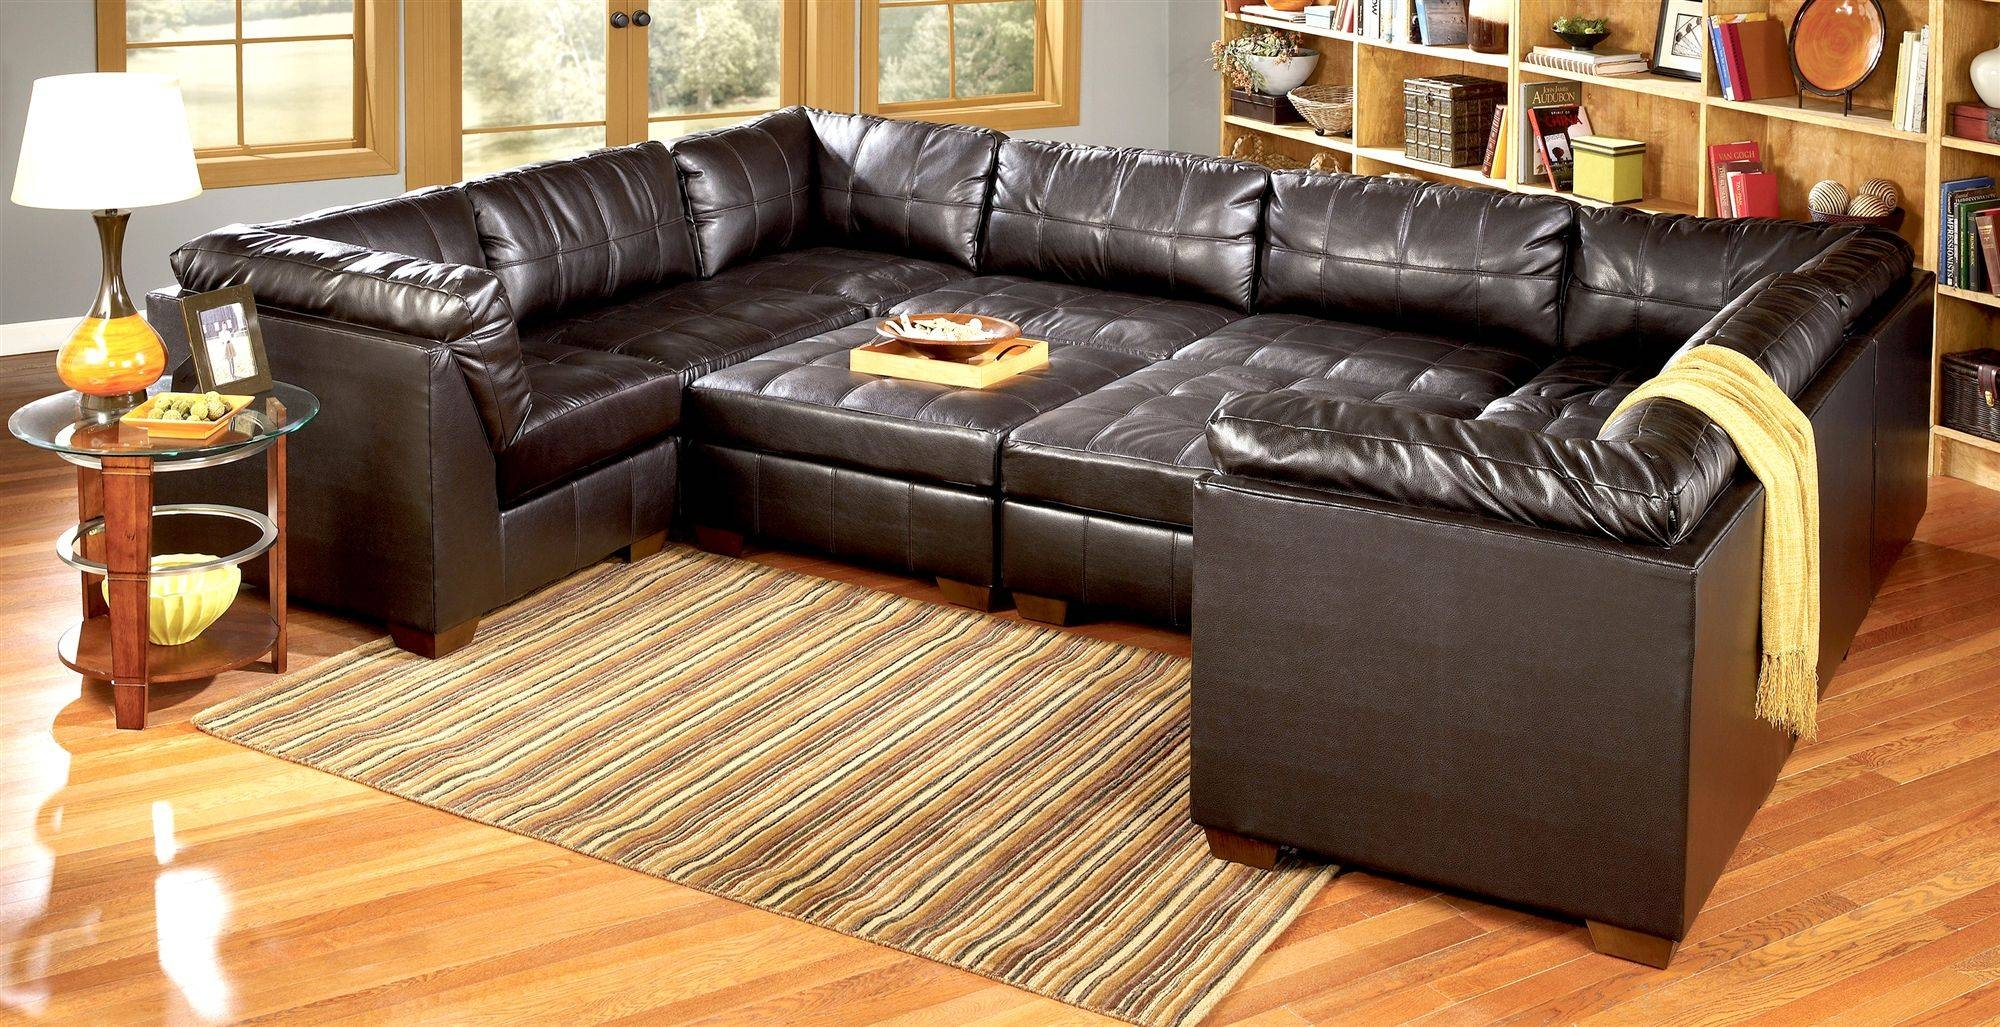 Ideal Modular Sectional Sofa Decor | Home Designjohn inside Leather Modular Sectional Sofas (Image 14 of 30)